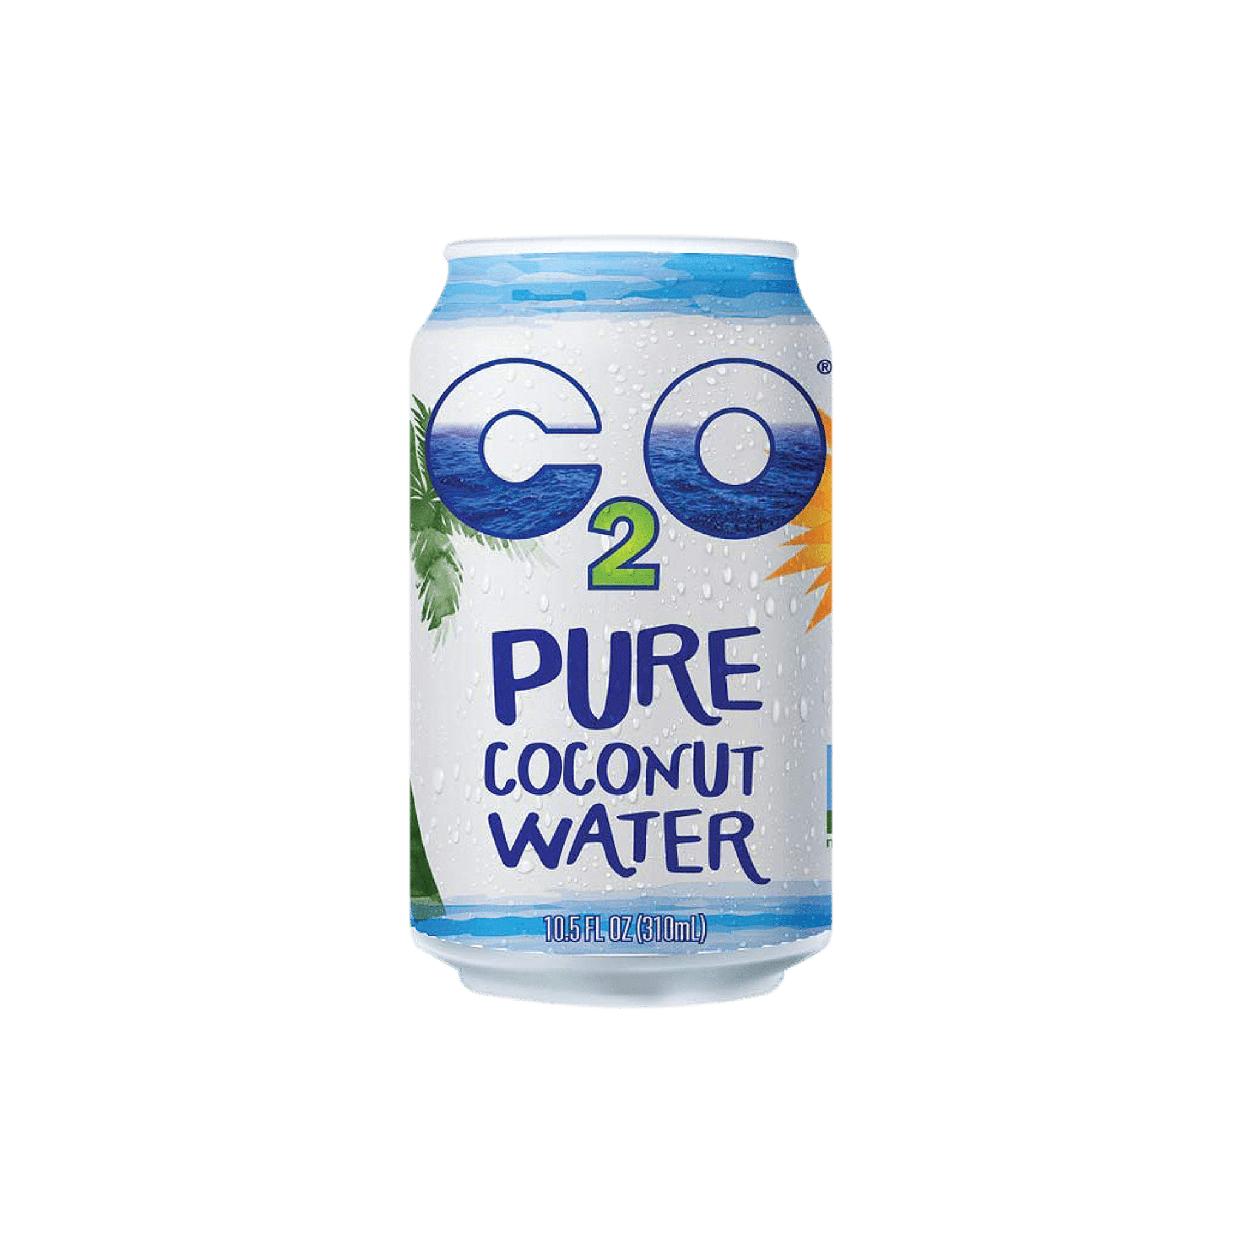 c2o pure coconut water 10.5oz